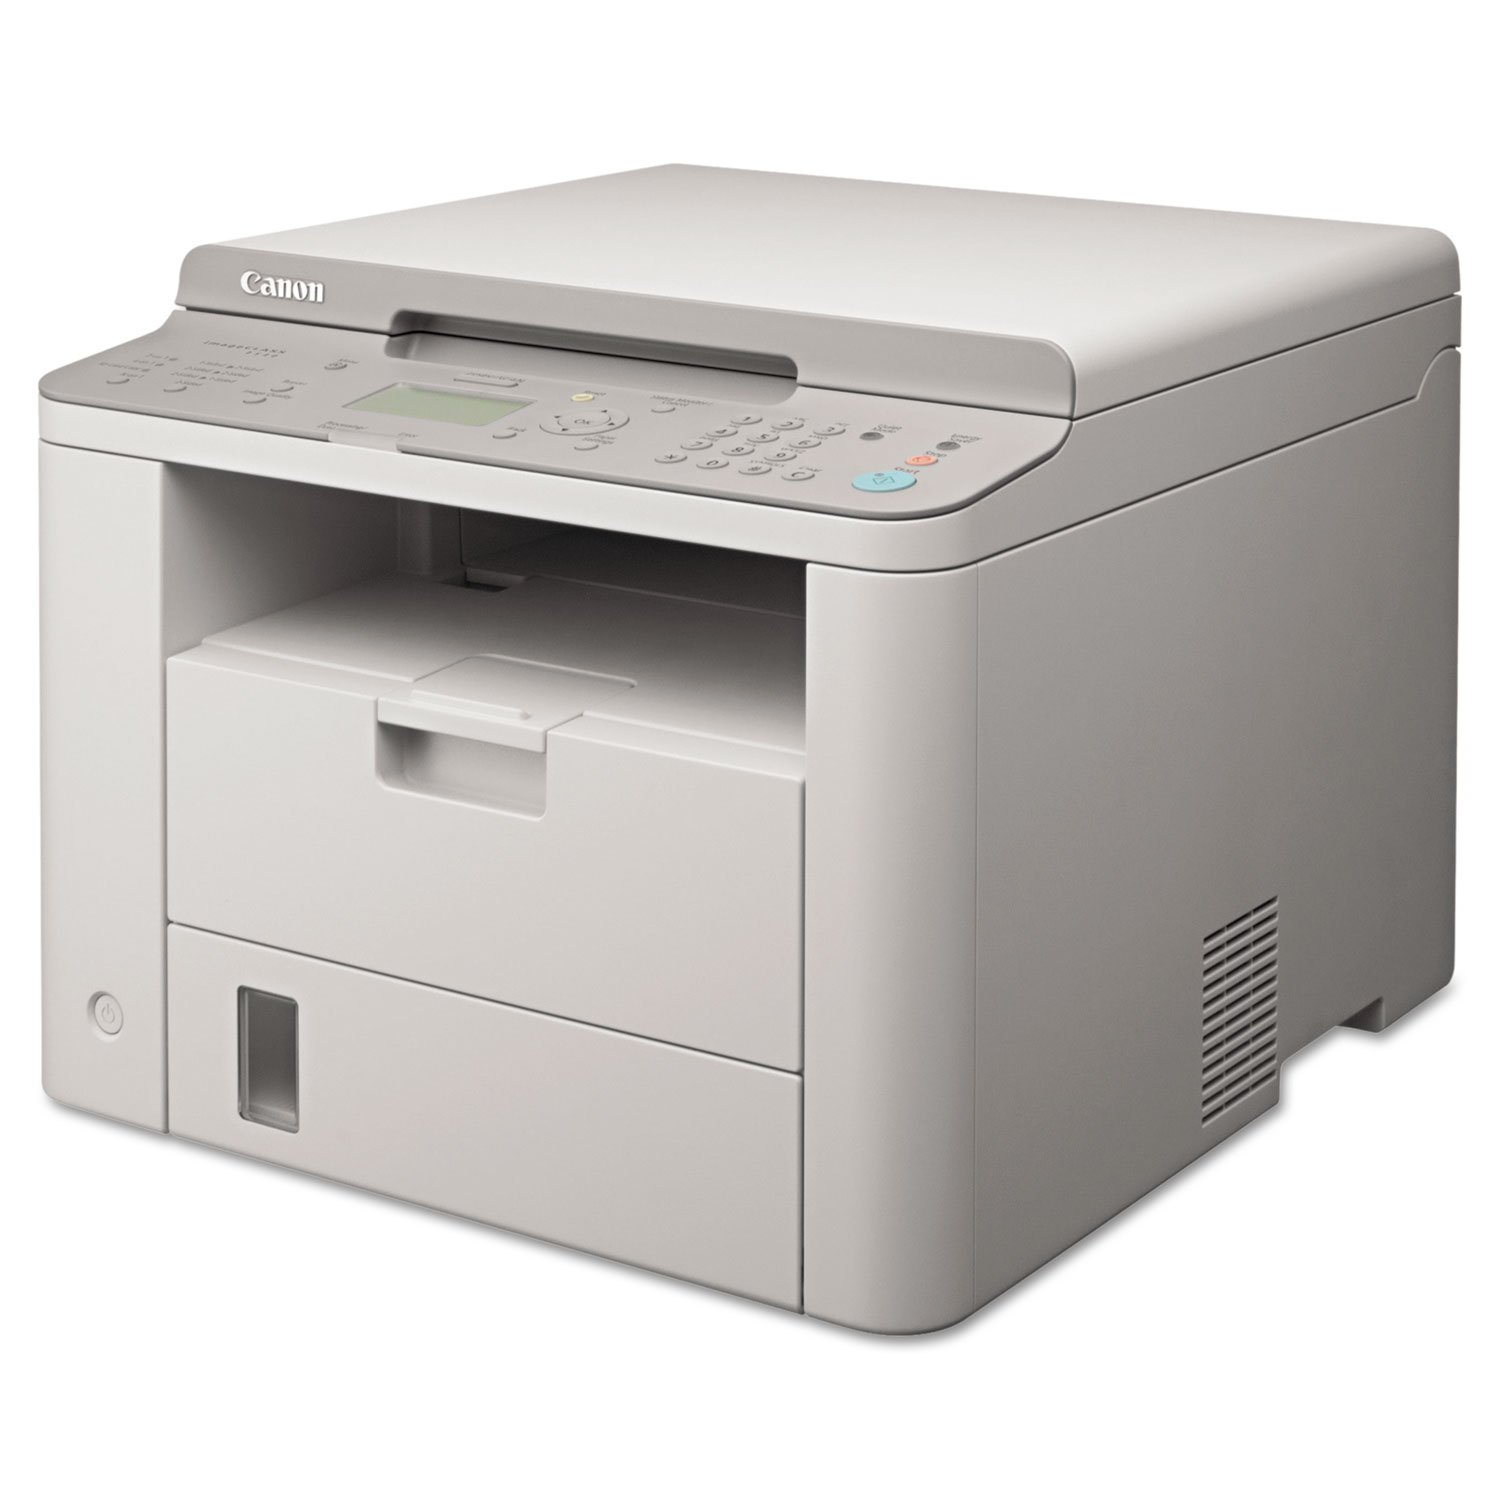 Amazon.com: Canon imageCLASS D530 Monochrome Printer with Scanner ...